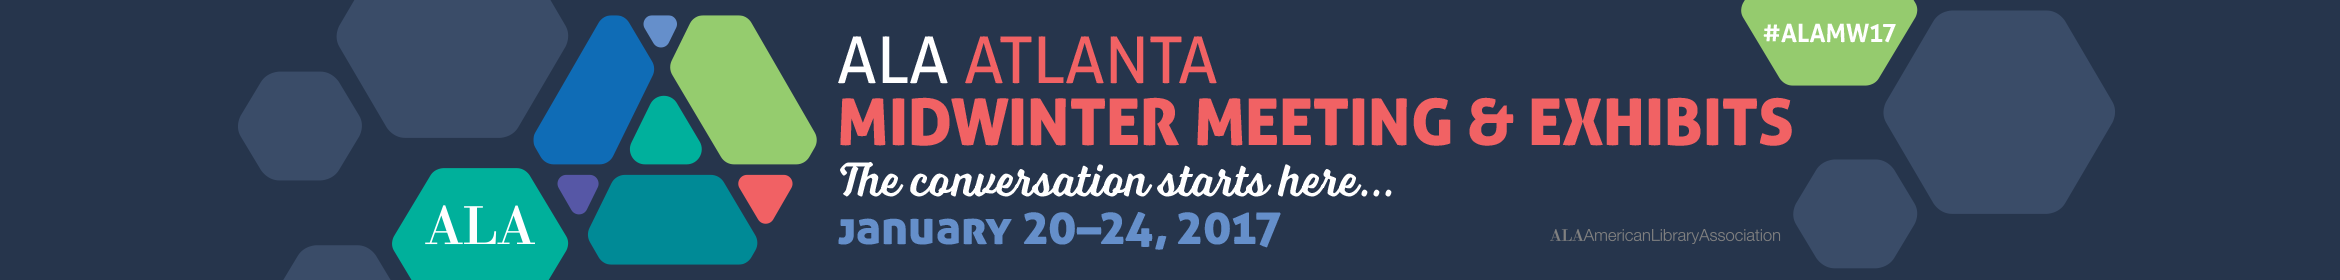 2017 ALA Midwinter Meeting Main banner